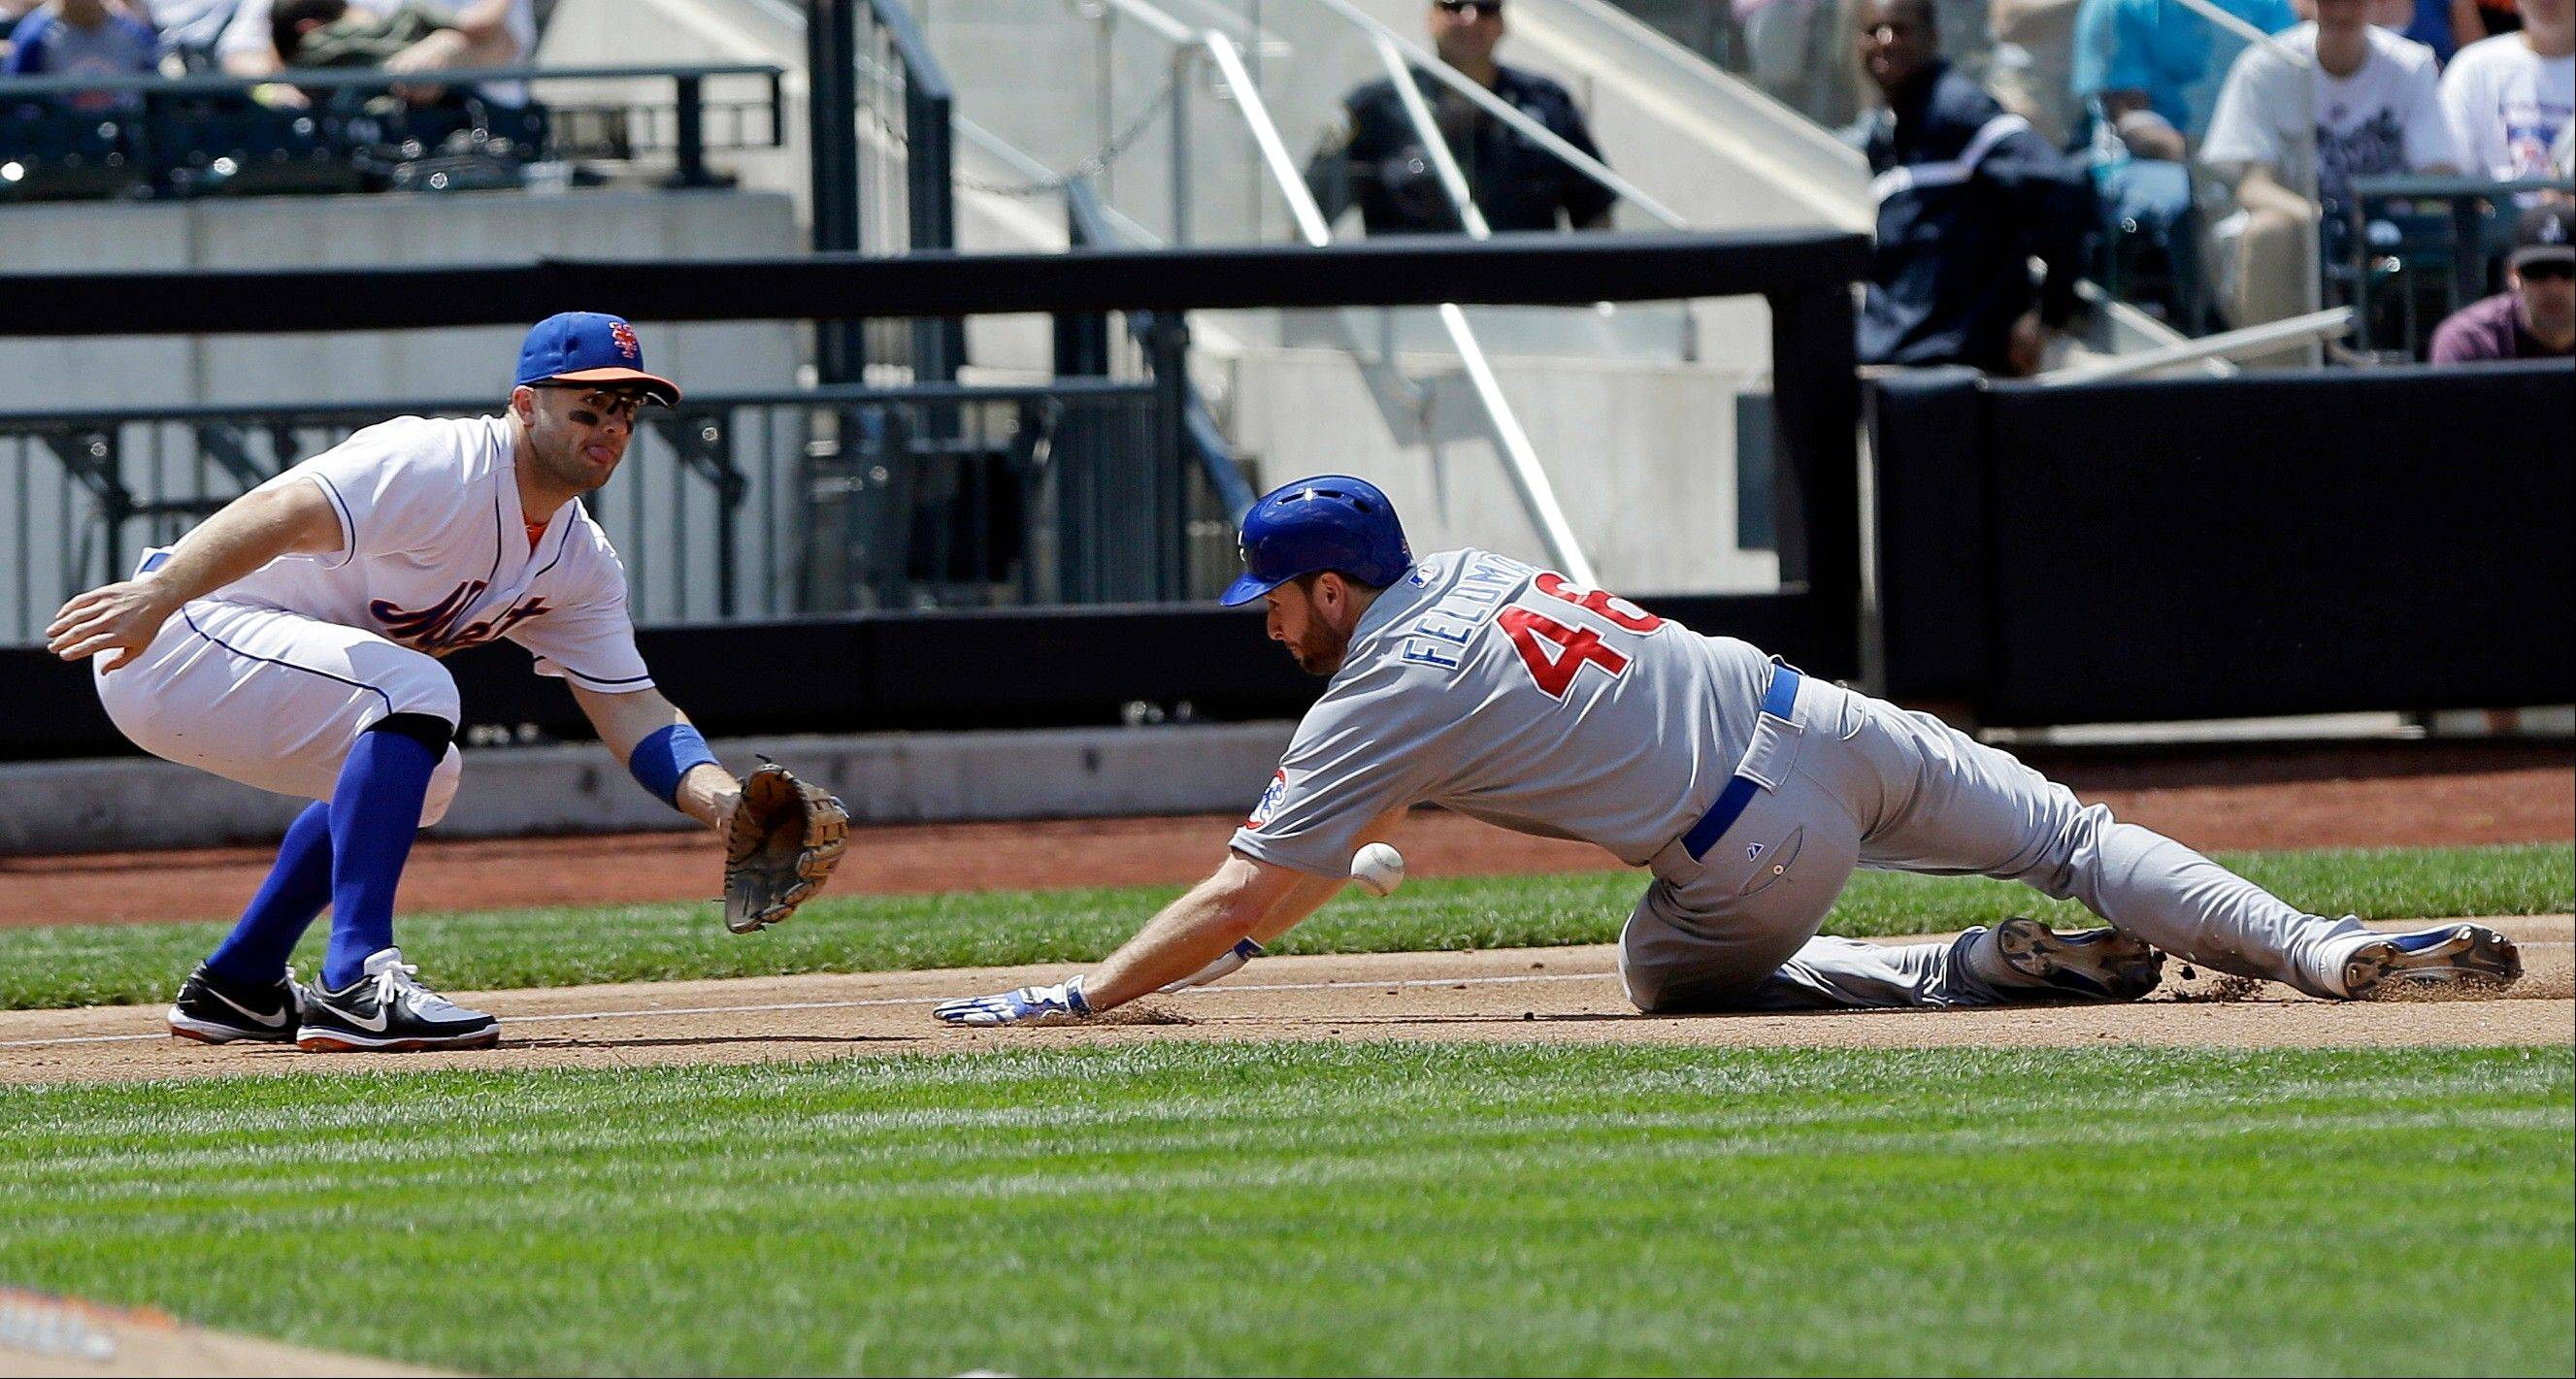 Chicago Cubs' Scott Feldman (46) slides in safely at third base as New York Mets third baseman David Wright (5) waits for the ball during the fourth inning of a baseball game Saturday, June 15, 2013, in New York. Feldman advanced from first base on a single by Darwin Barney.